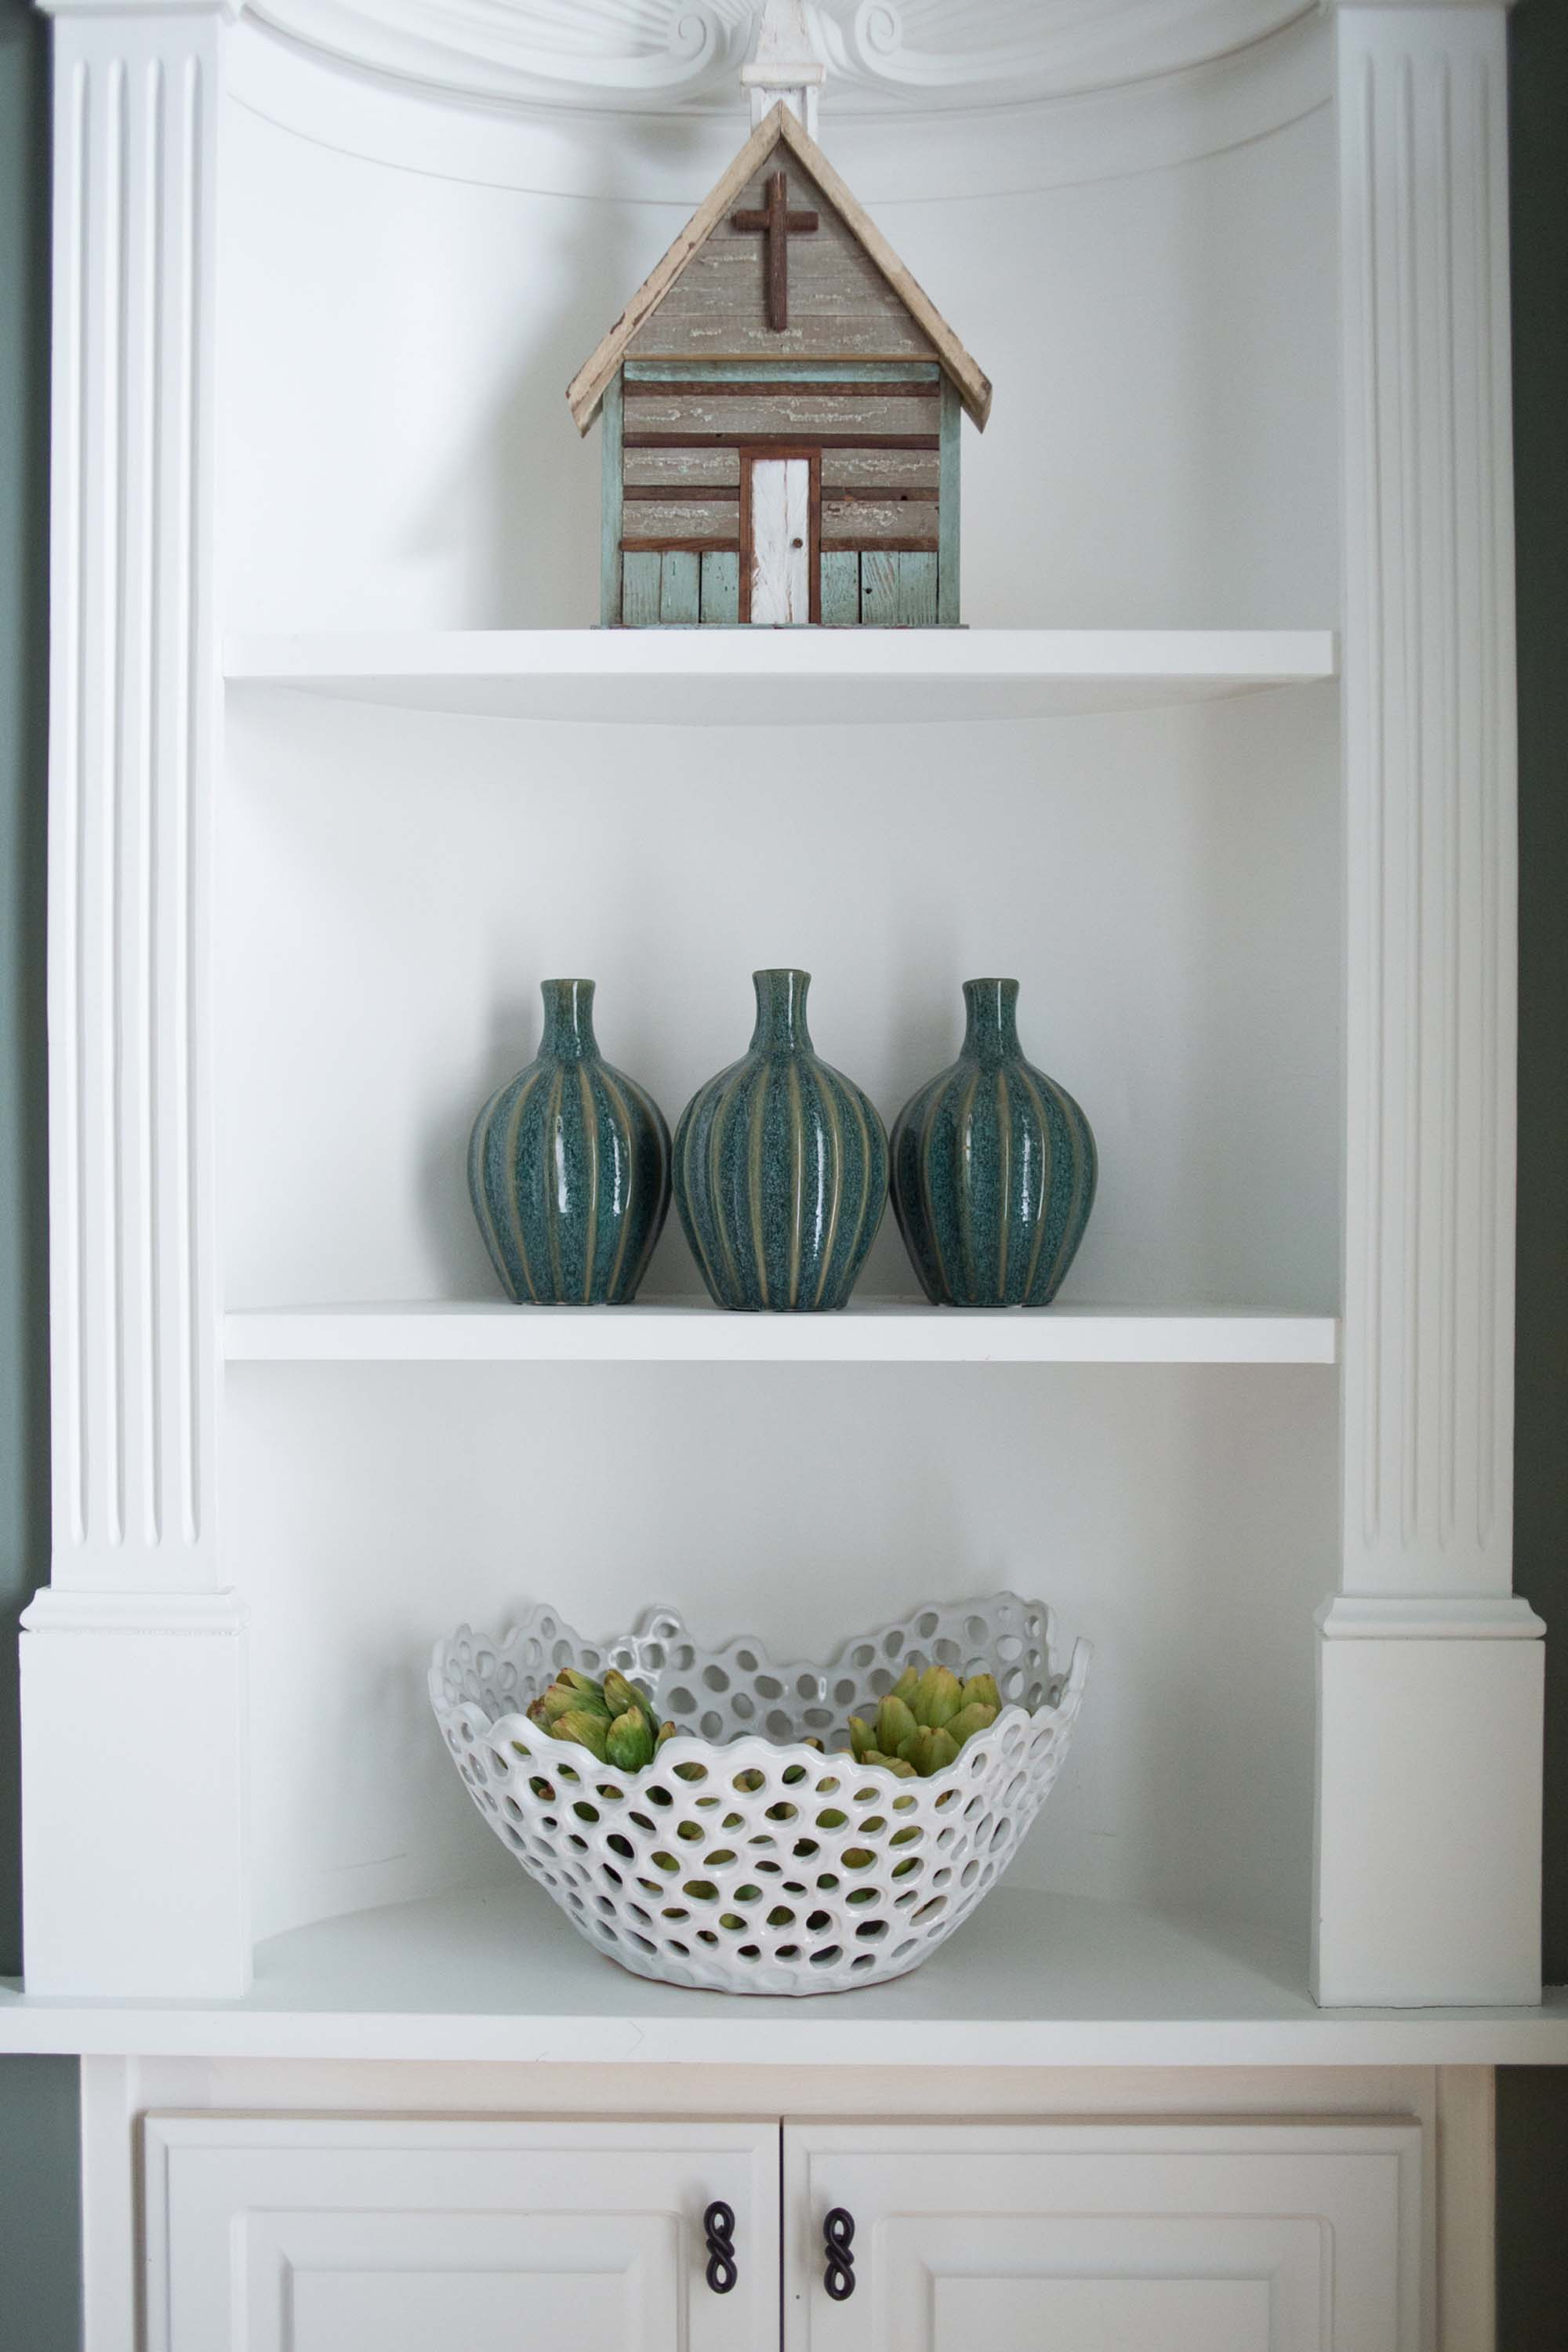 Shelves with miniature chapel, vase and basket